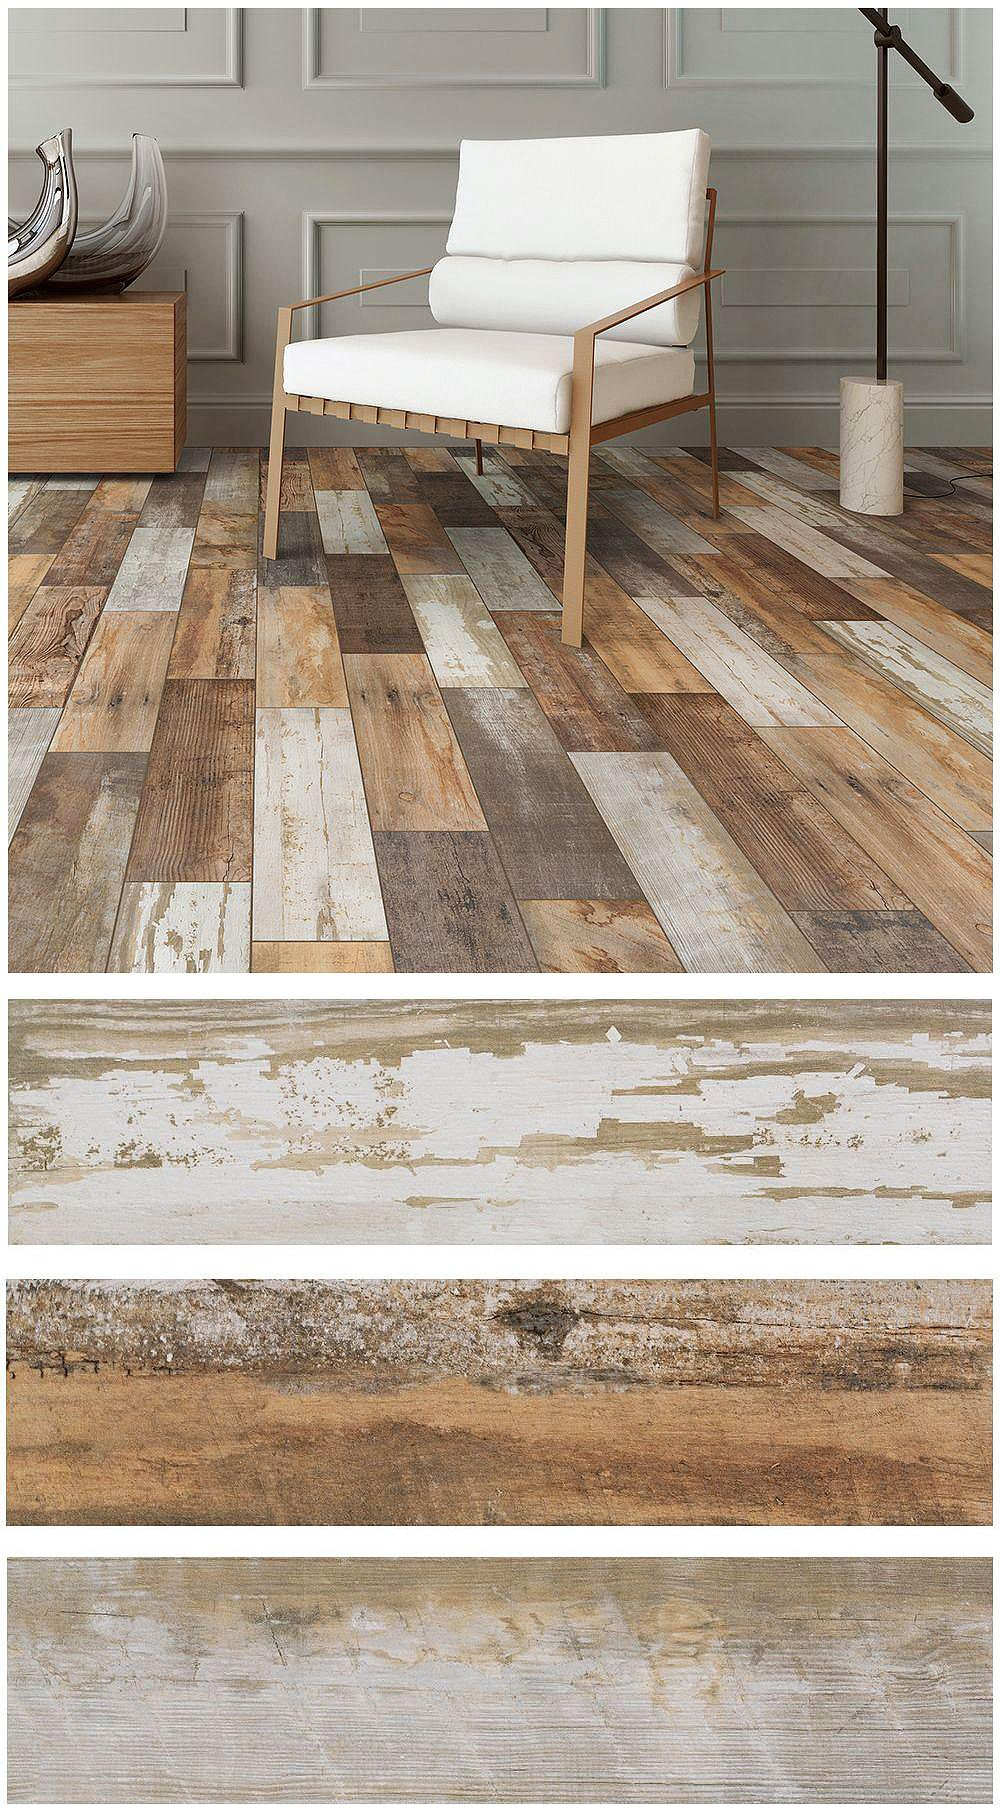 Marazzi montagna wood vintage chic 6 in x 24 in porcelain floor marazzi montagna wood vintage chic 6 in x 24 in porcelain floor and wall tile 1453 sq ft case dailygadgetfo Choice Image